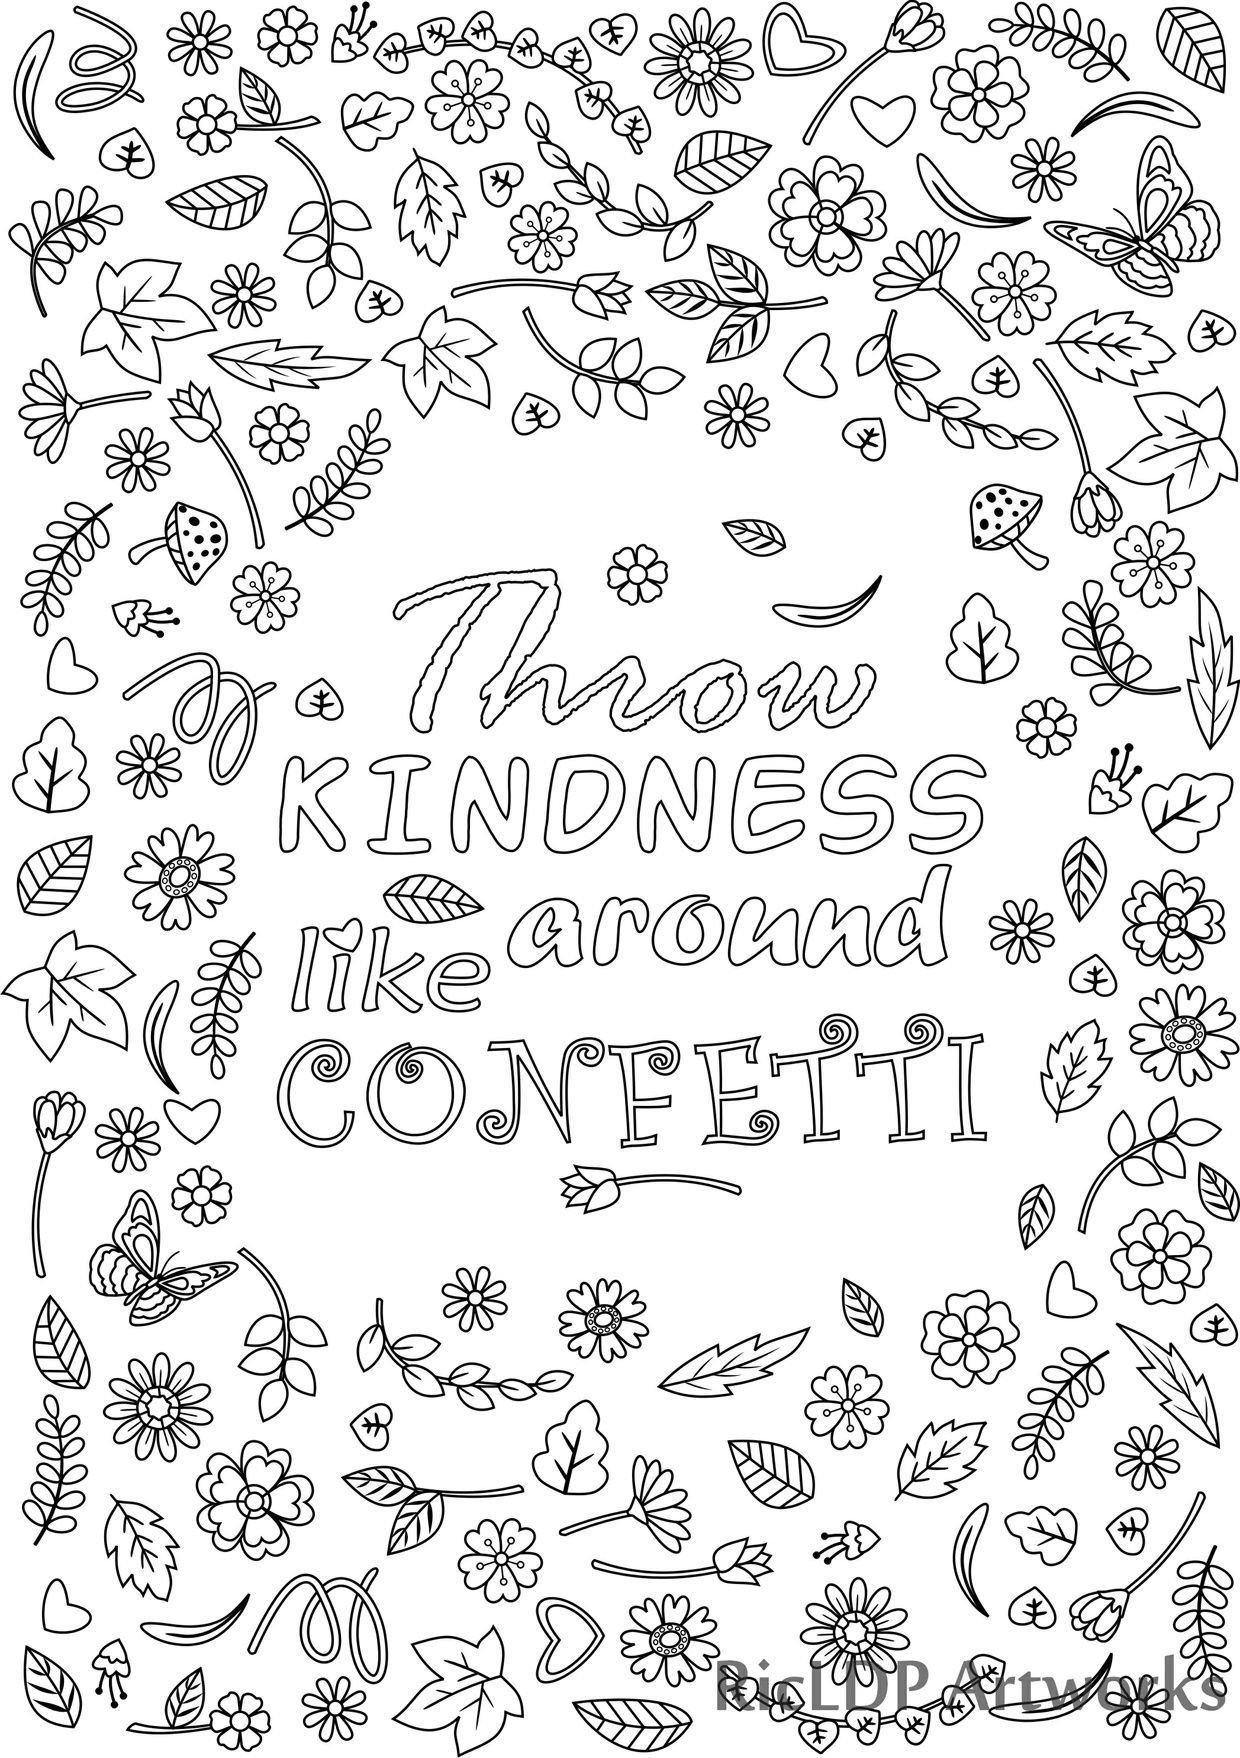 coloring pages acts of kindness - printable throw kindness around like confetti coloring page for grown ups flower design with